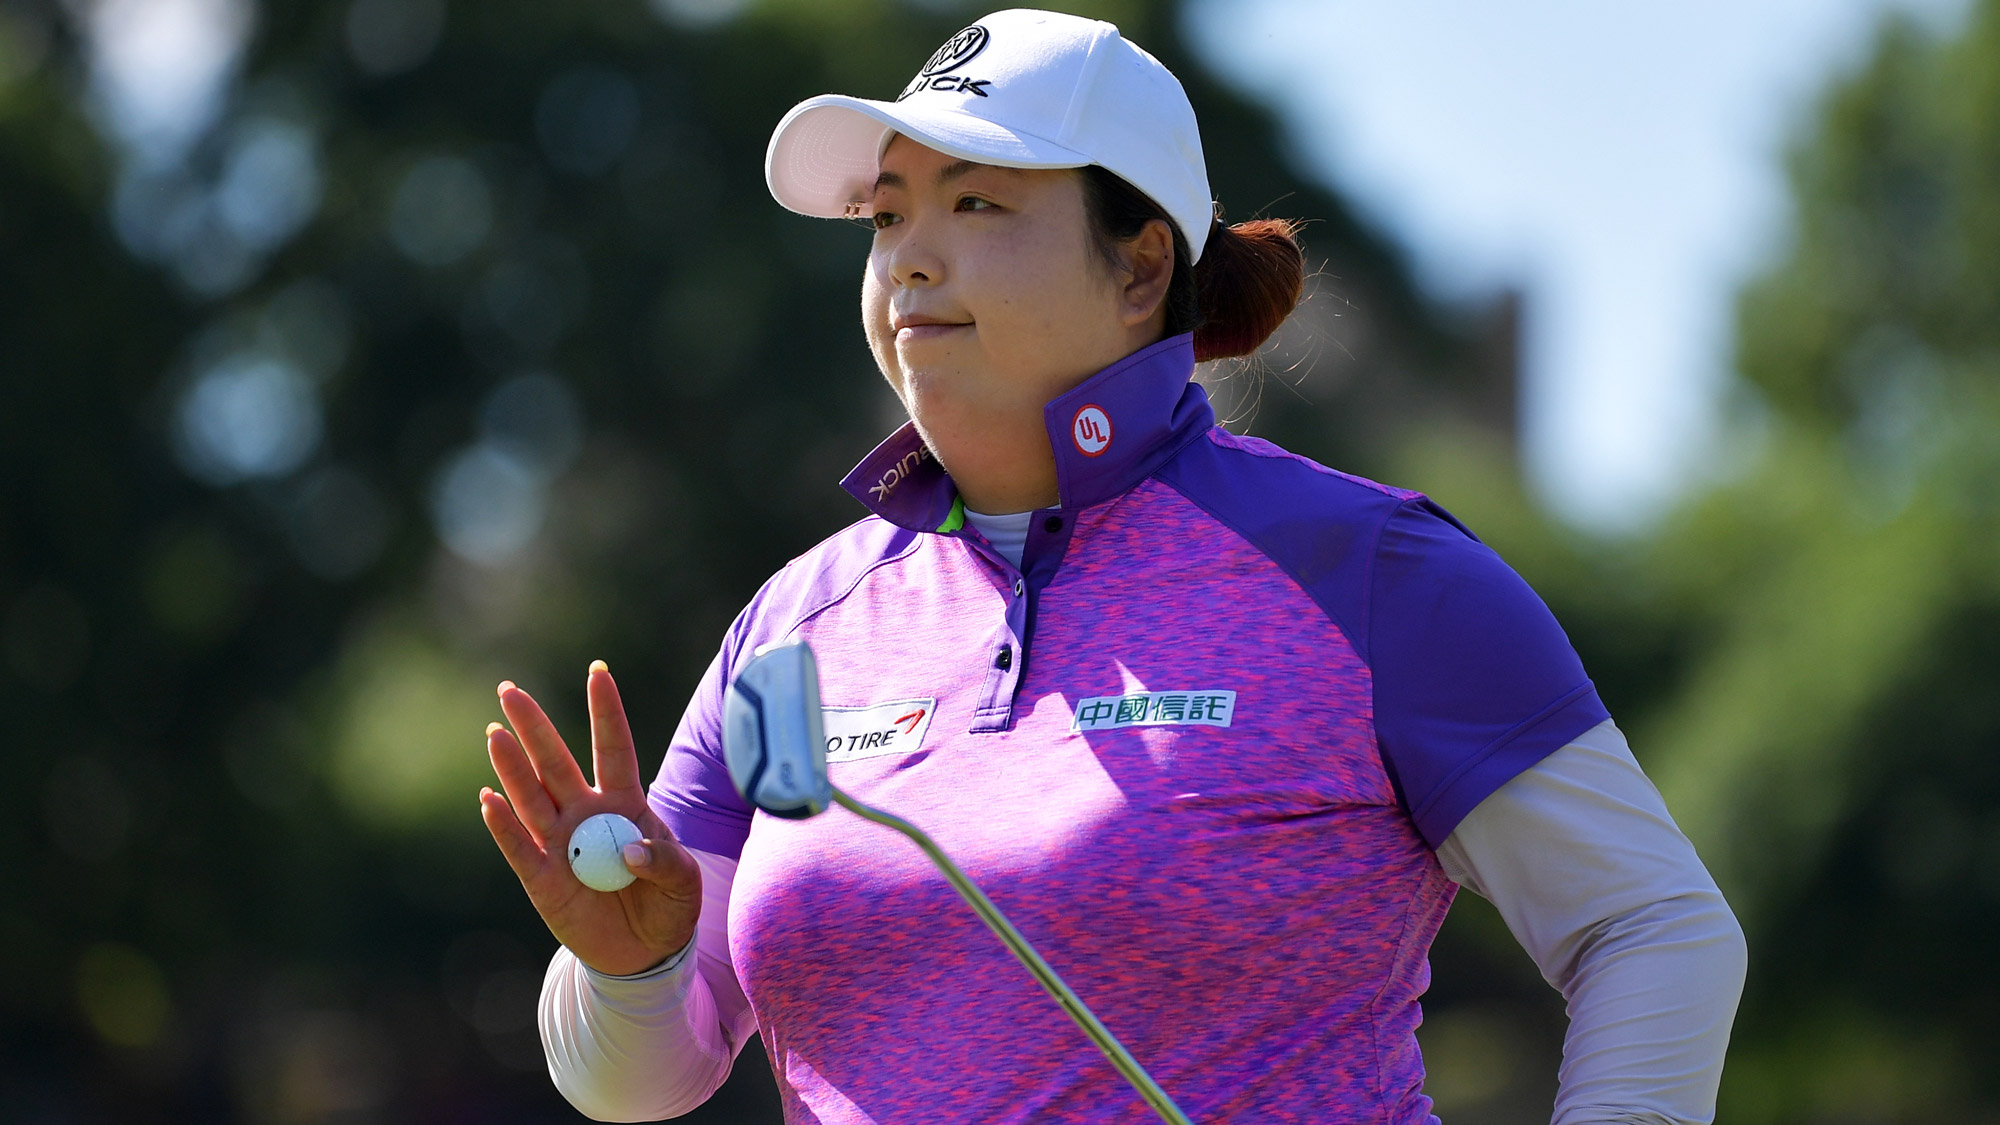 Shanshan Feng After a Birdie in Arkansas